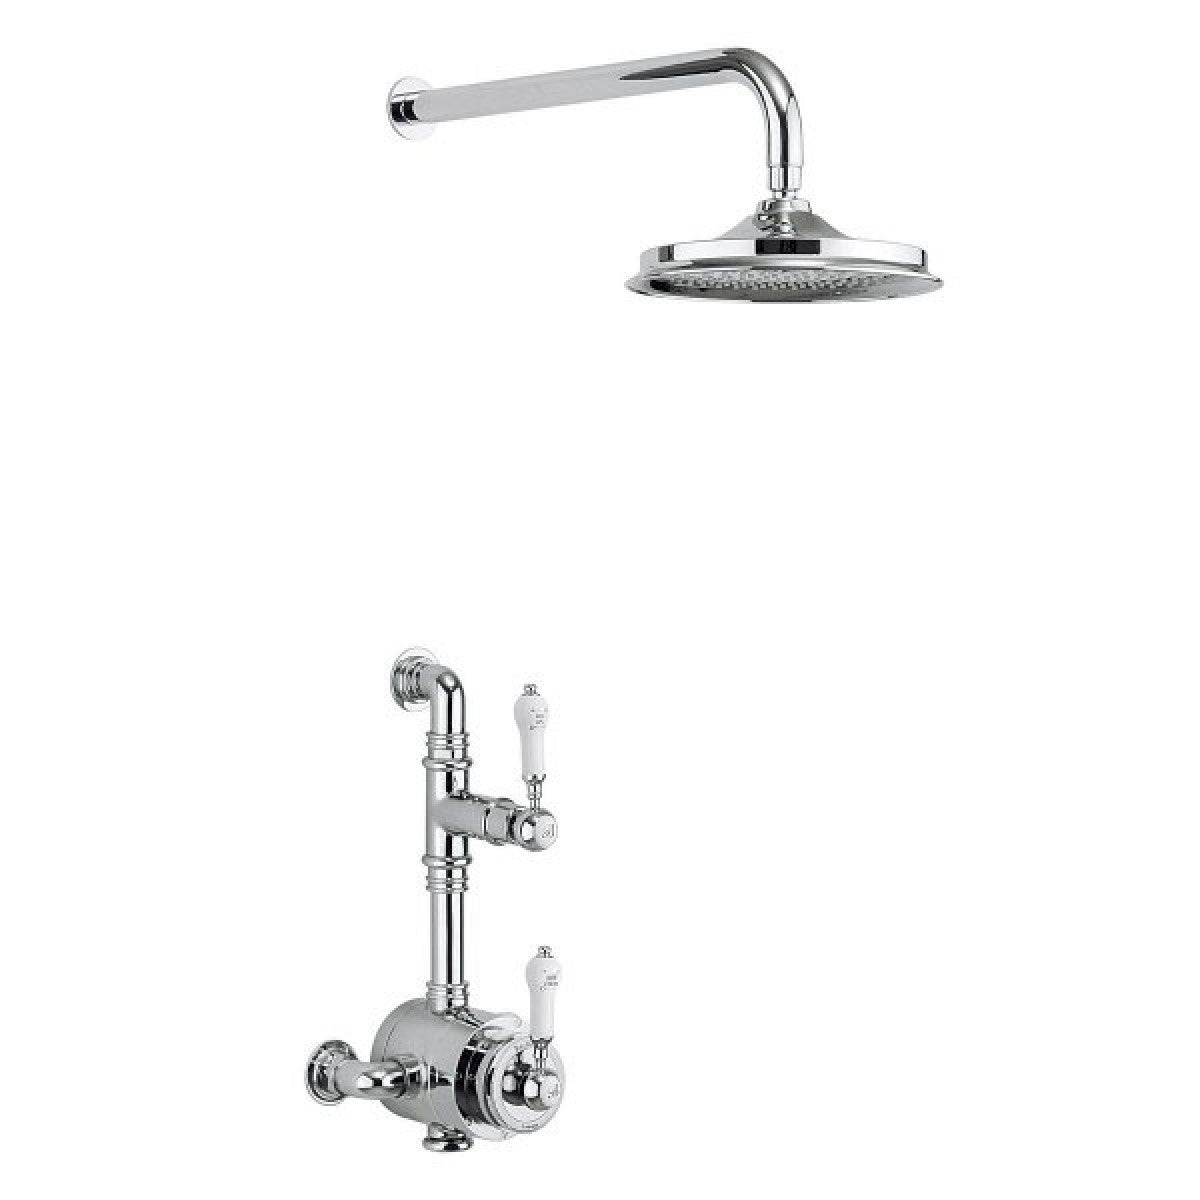 BURLINGTON STOUR EXPOSED THERMOSTATIC SHOWER KIT WITH AIRBURST SHOWER HEAD